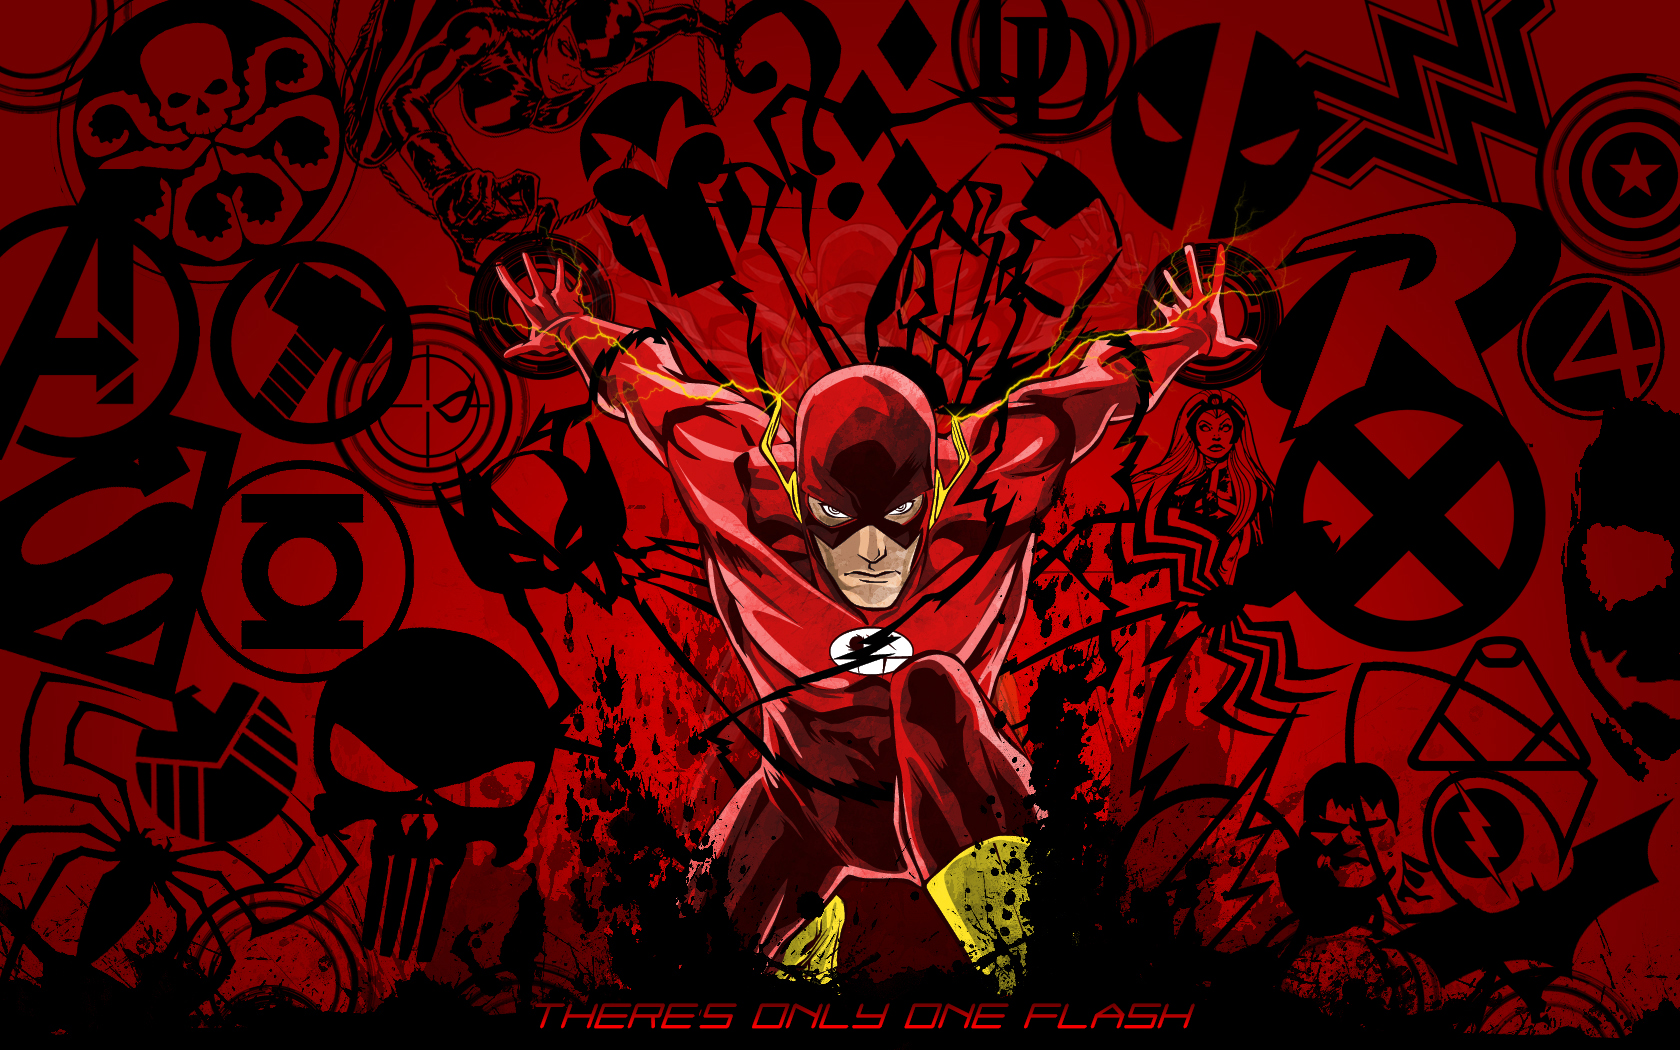 Flash Cw Wallpaper The flash cw wallpaper hd hd 1680x1050